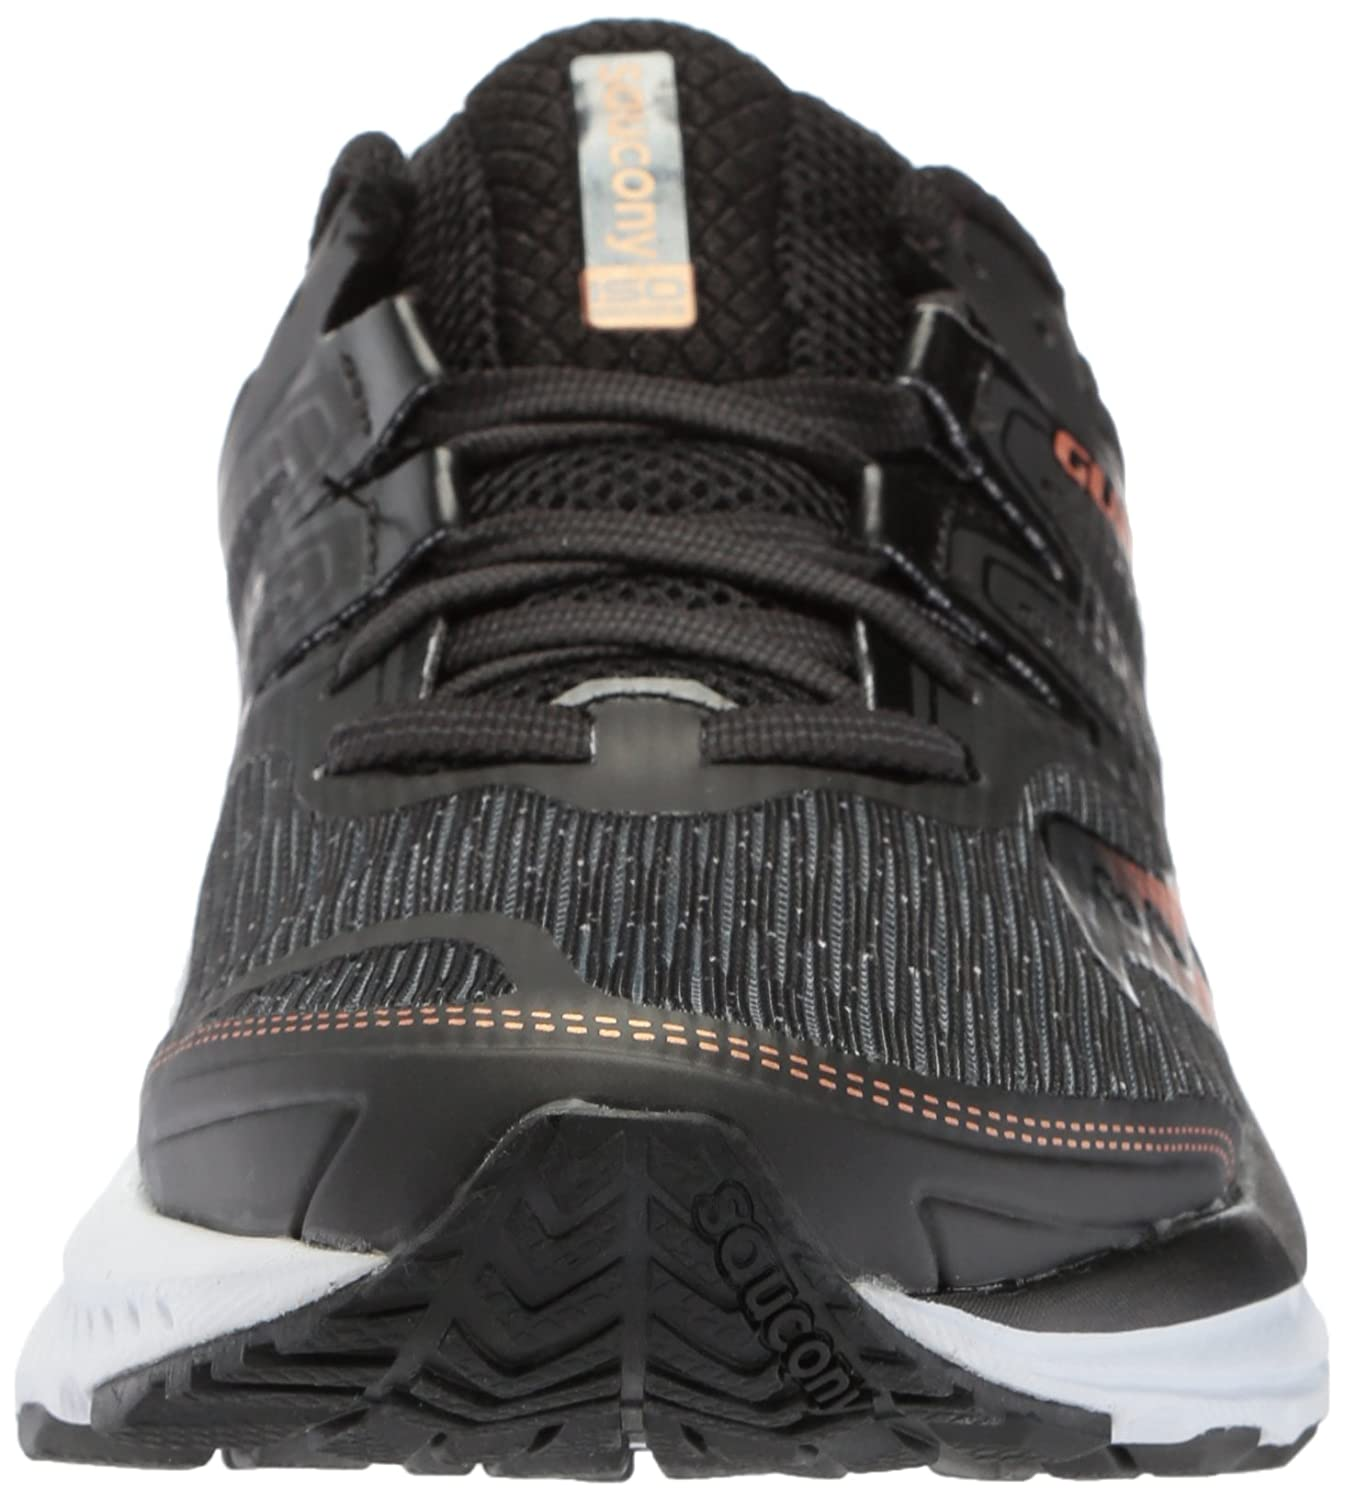 Saucony Women's Guide Iso B(M) Running Shoe B071WKL1D1 8 B(M) Iso US|Black/Denim 30e02d